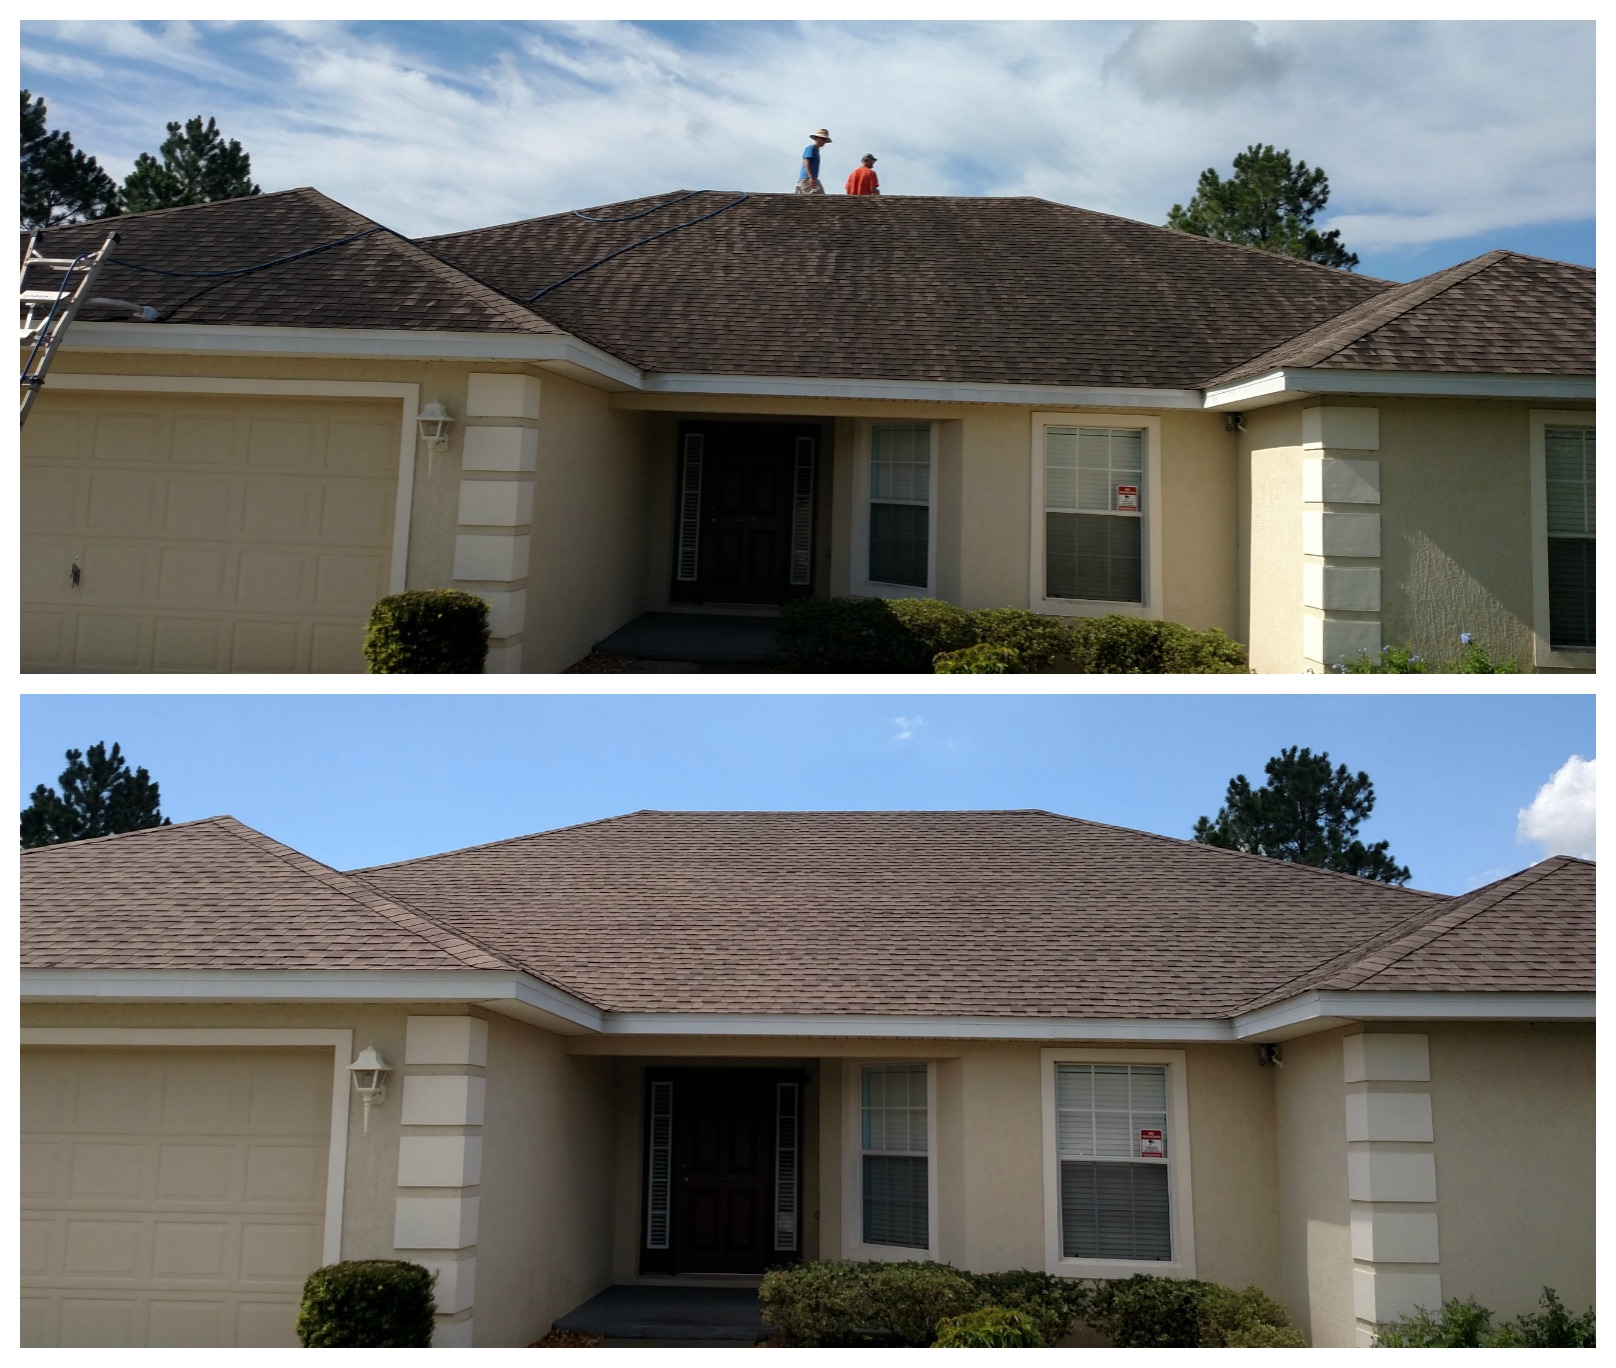 Safe non pressure roof cleaning in lakeland fl top down exterior home cleaning - Exterior home cleaning ...